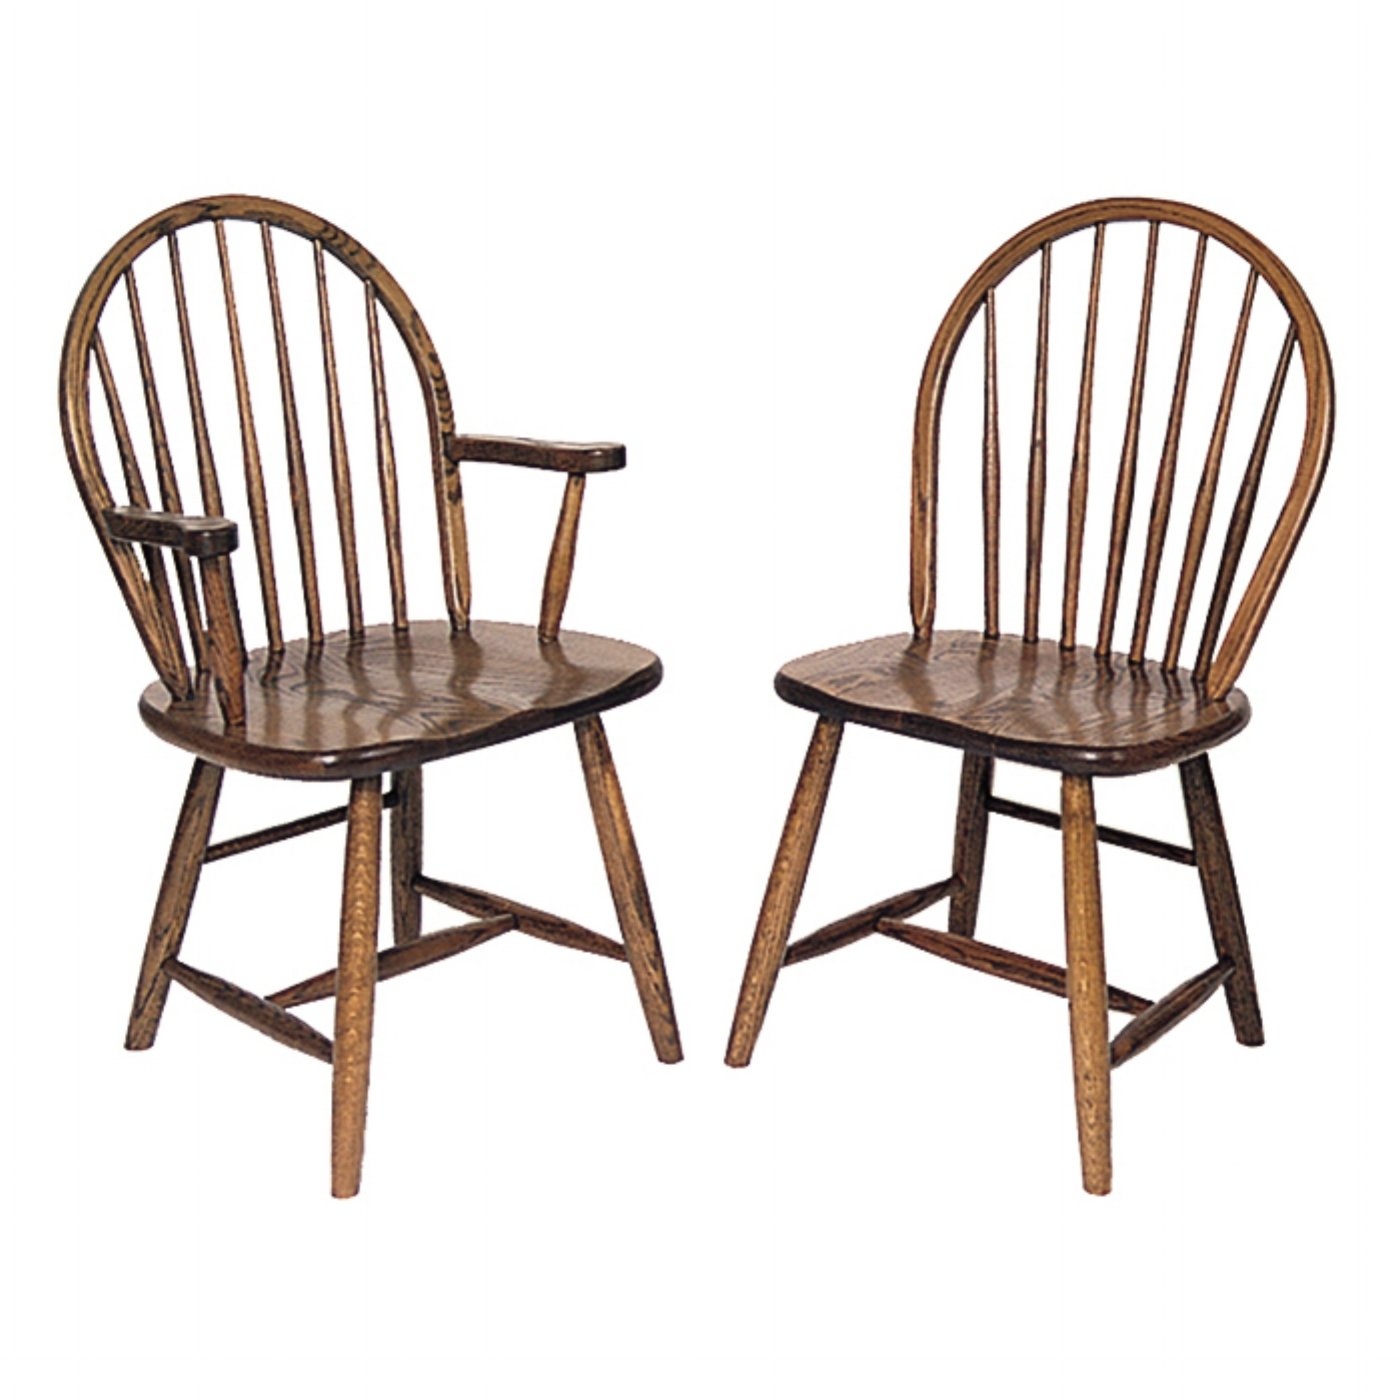 Penns Creek Shaker Windsor Chairs    Starting at: $319.99